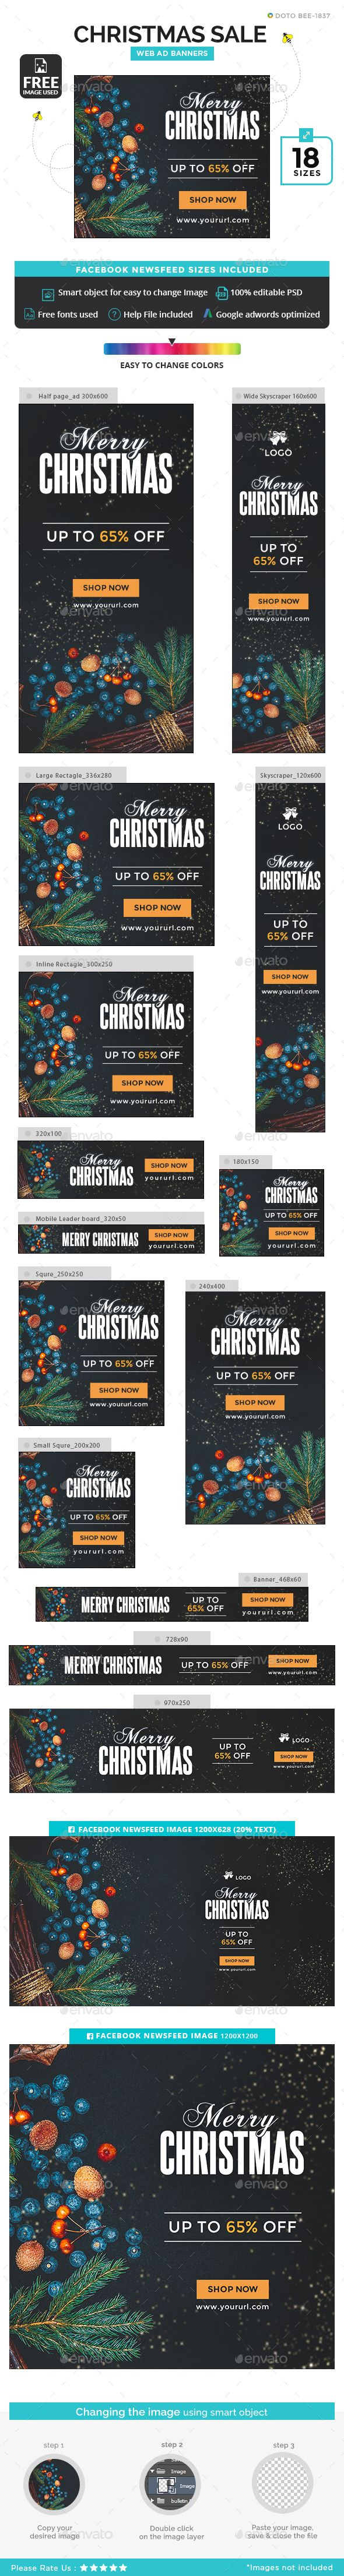 Christmas Sale Banners Template PSD #xmas #ads